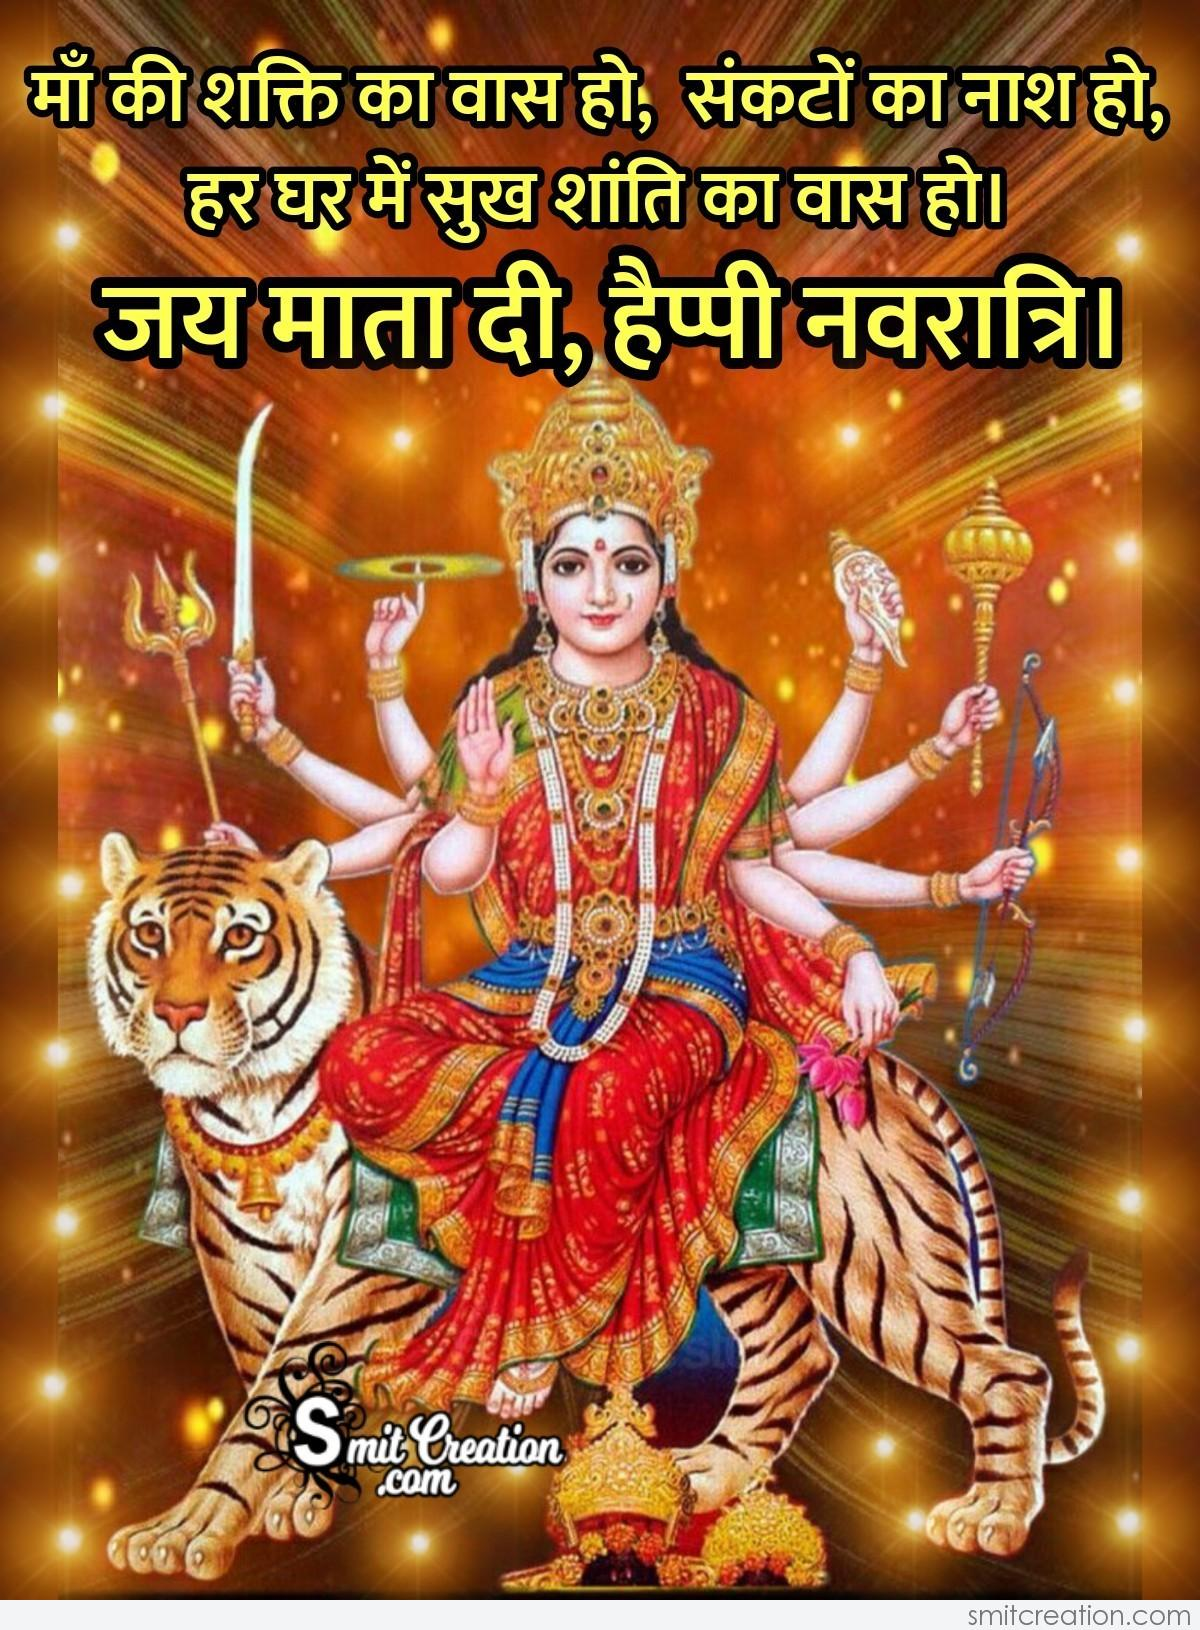 Happy Navratri Wishes Images: Navratri Wishes Images Pictures And Graphics